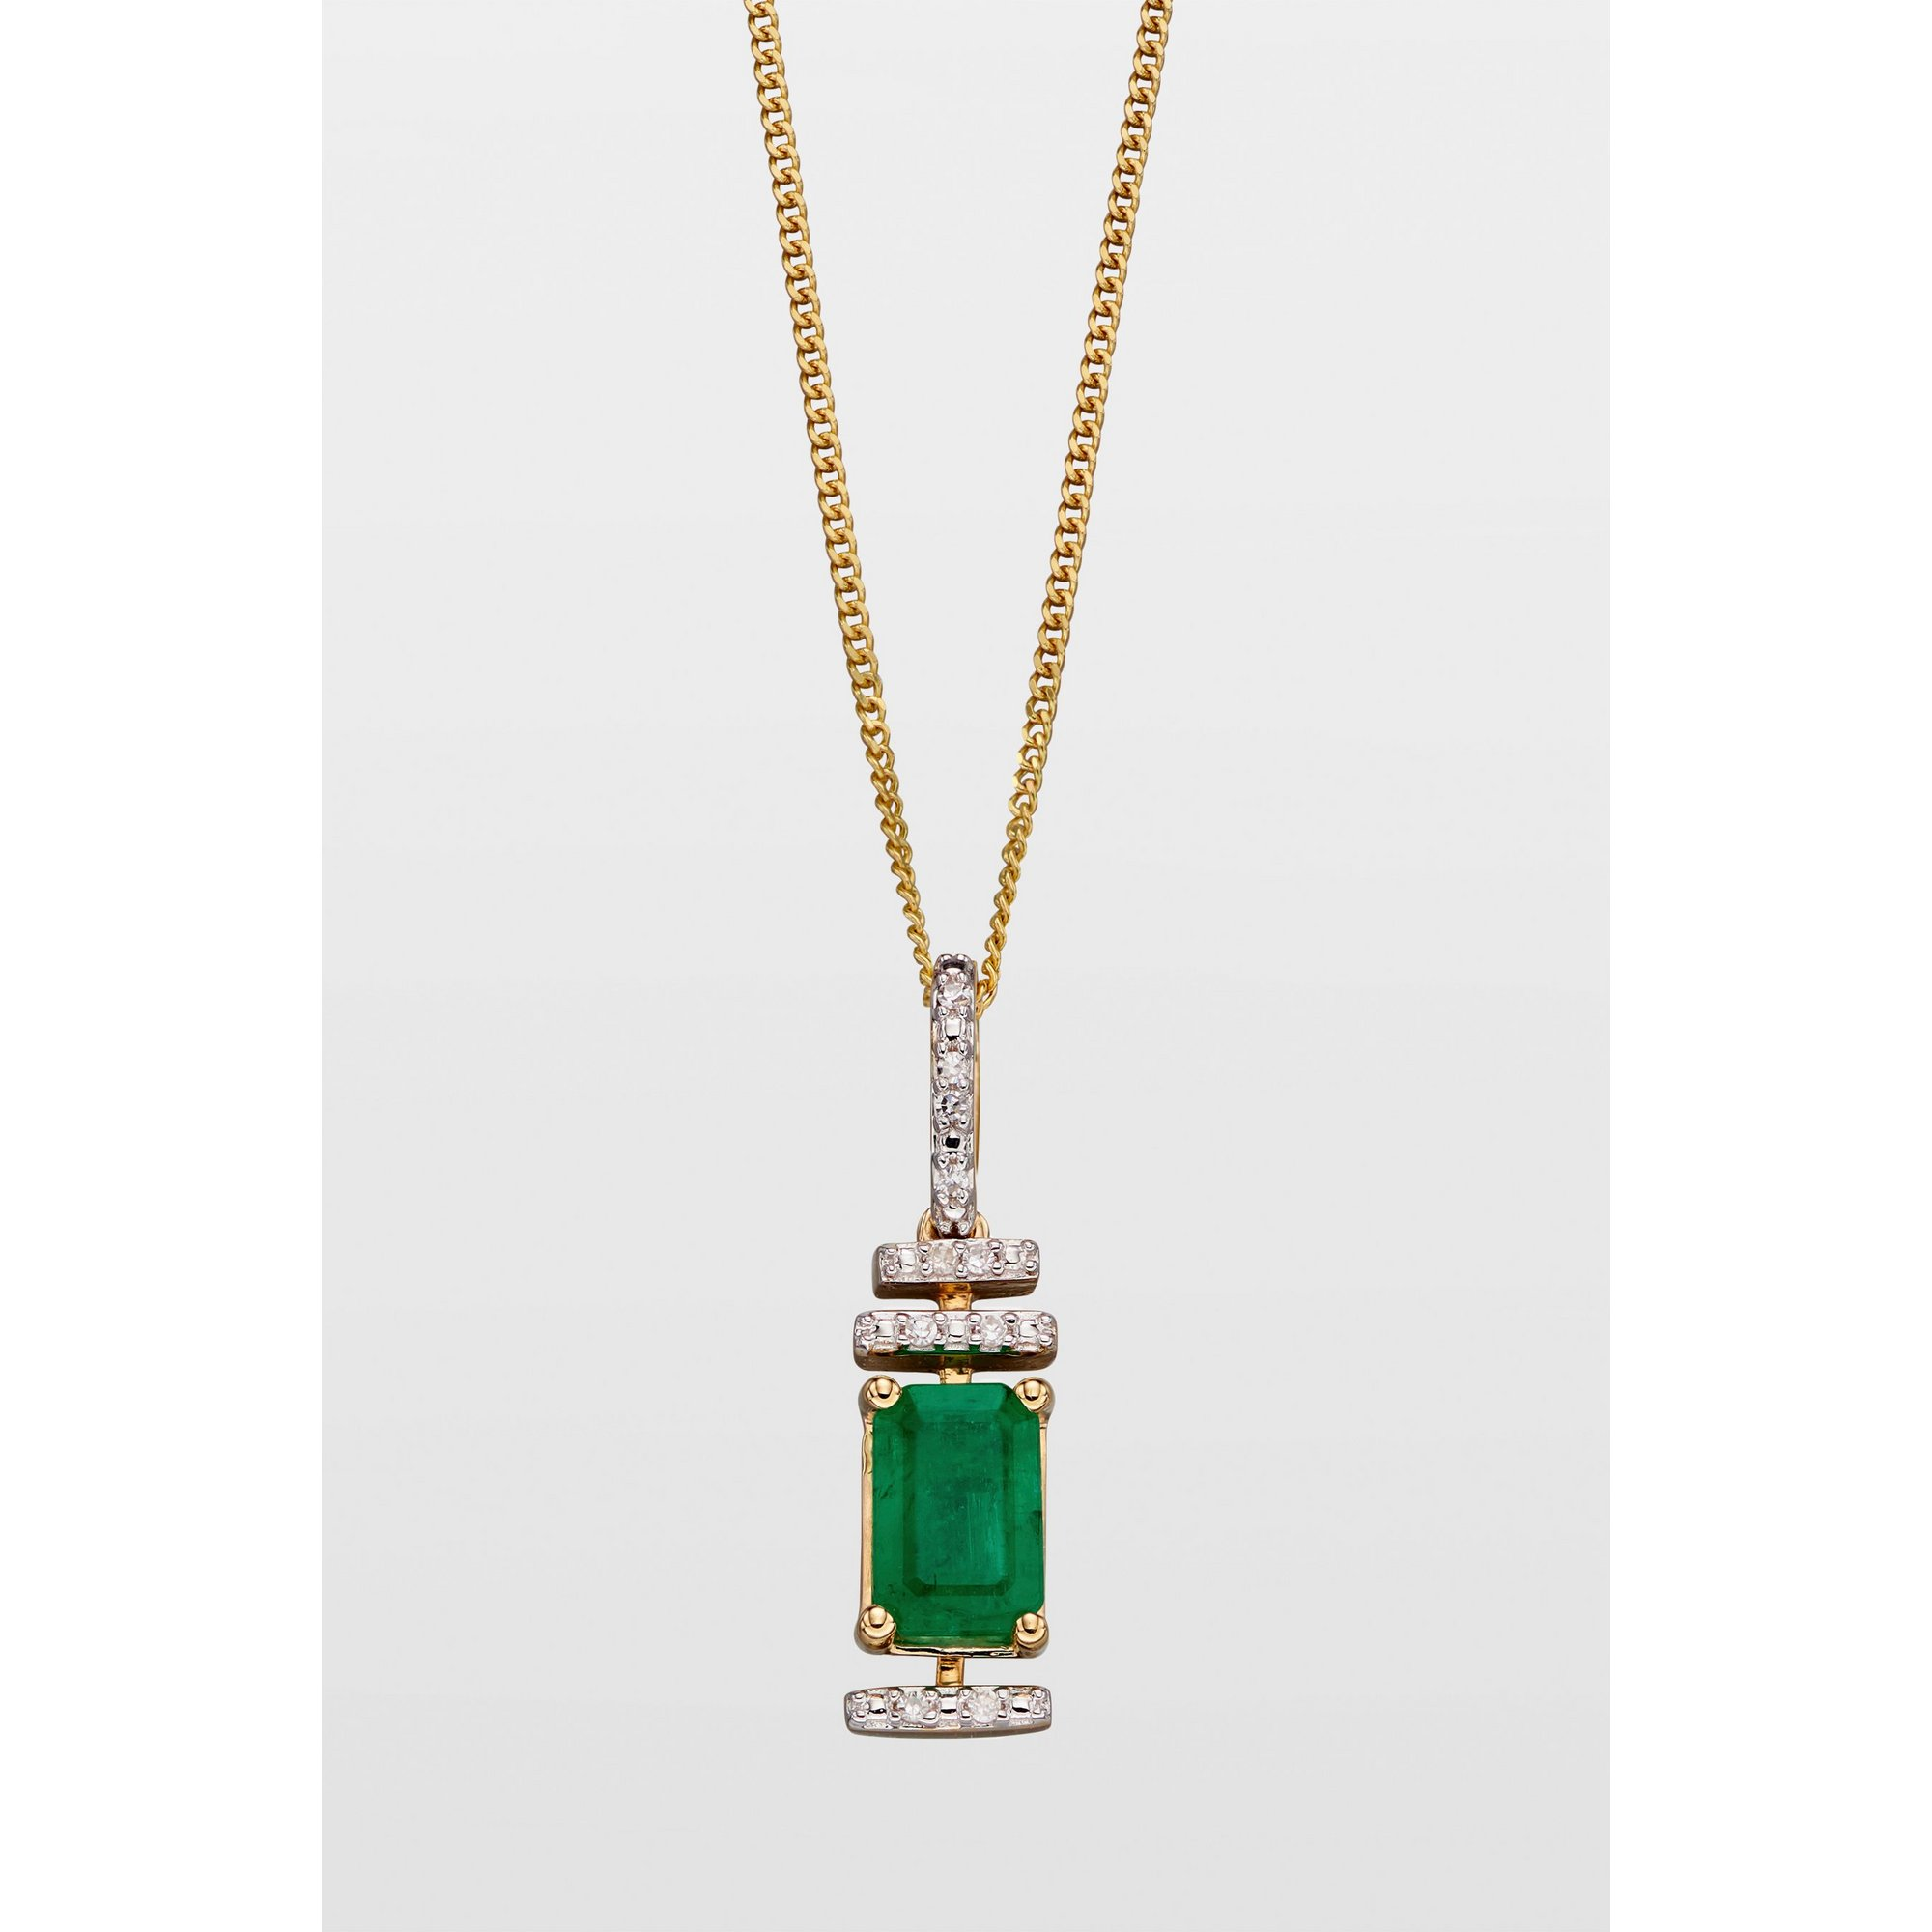 Image of 9ct Gold Emerald and Diamond Baguette Deco Style Pendant